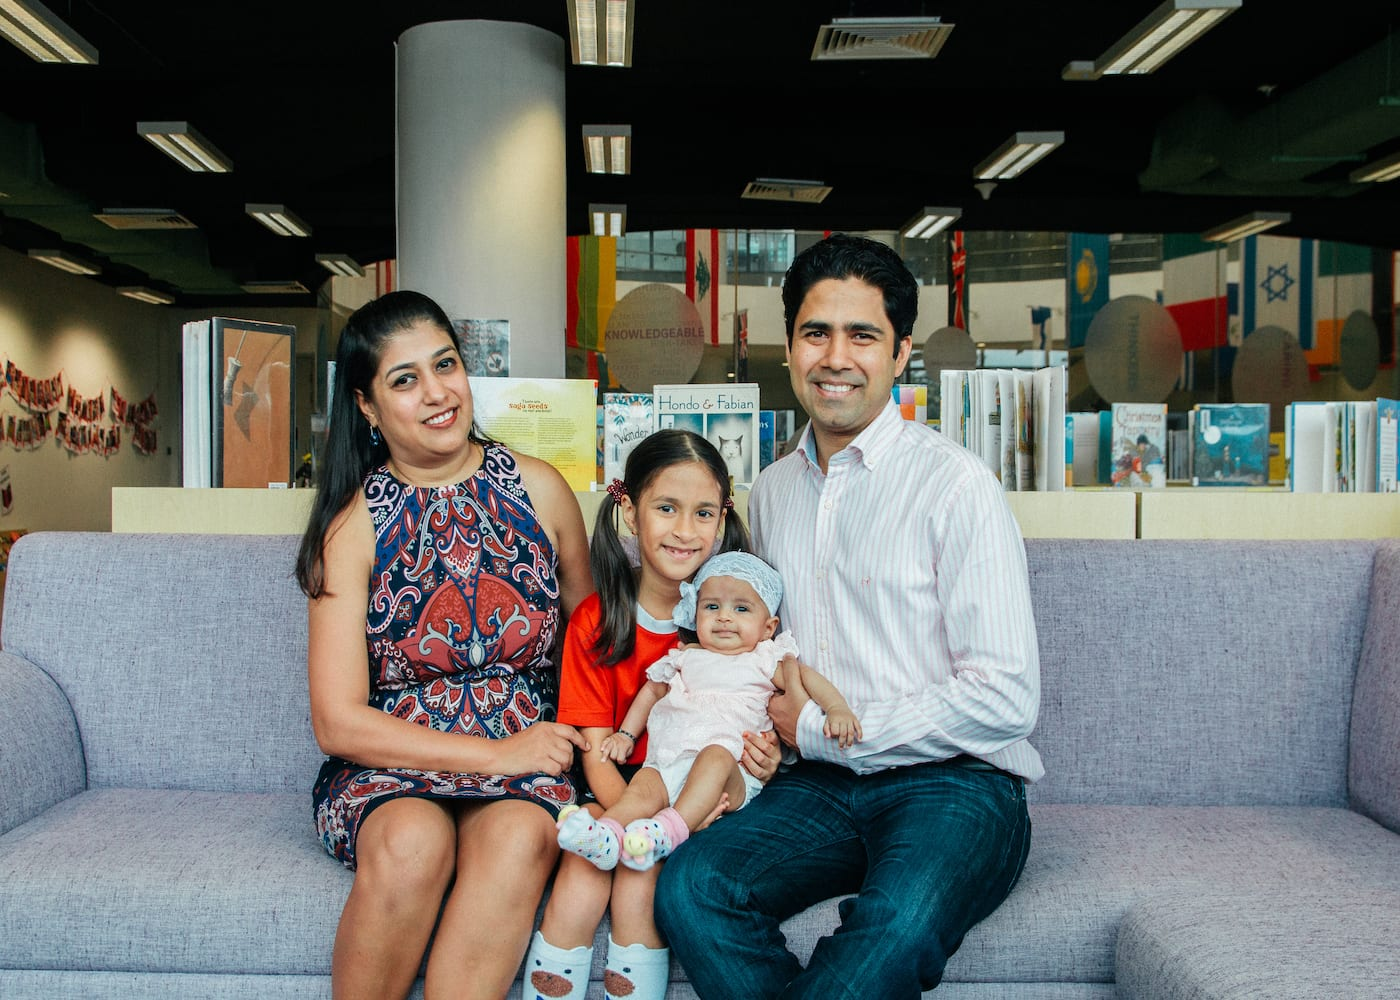 CIS parent Komal Bajaj Agrawal shares why her daughter, Vanya, loves CIS's nurturing approach to education